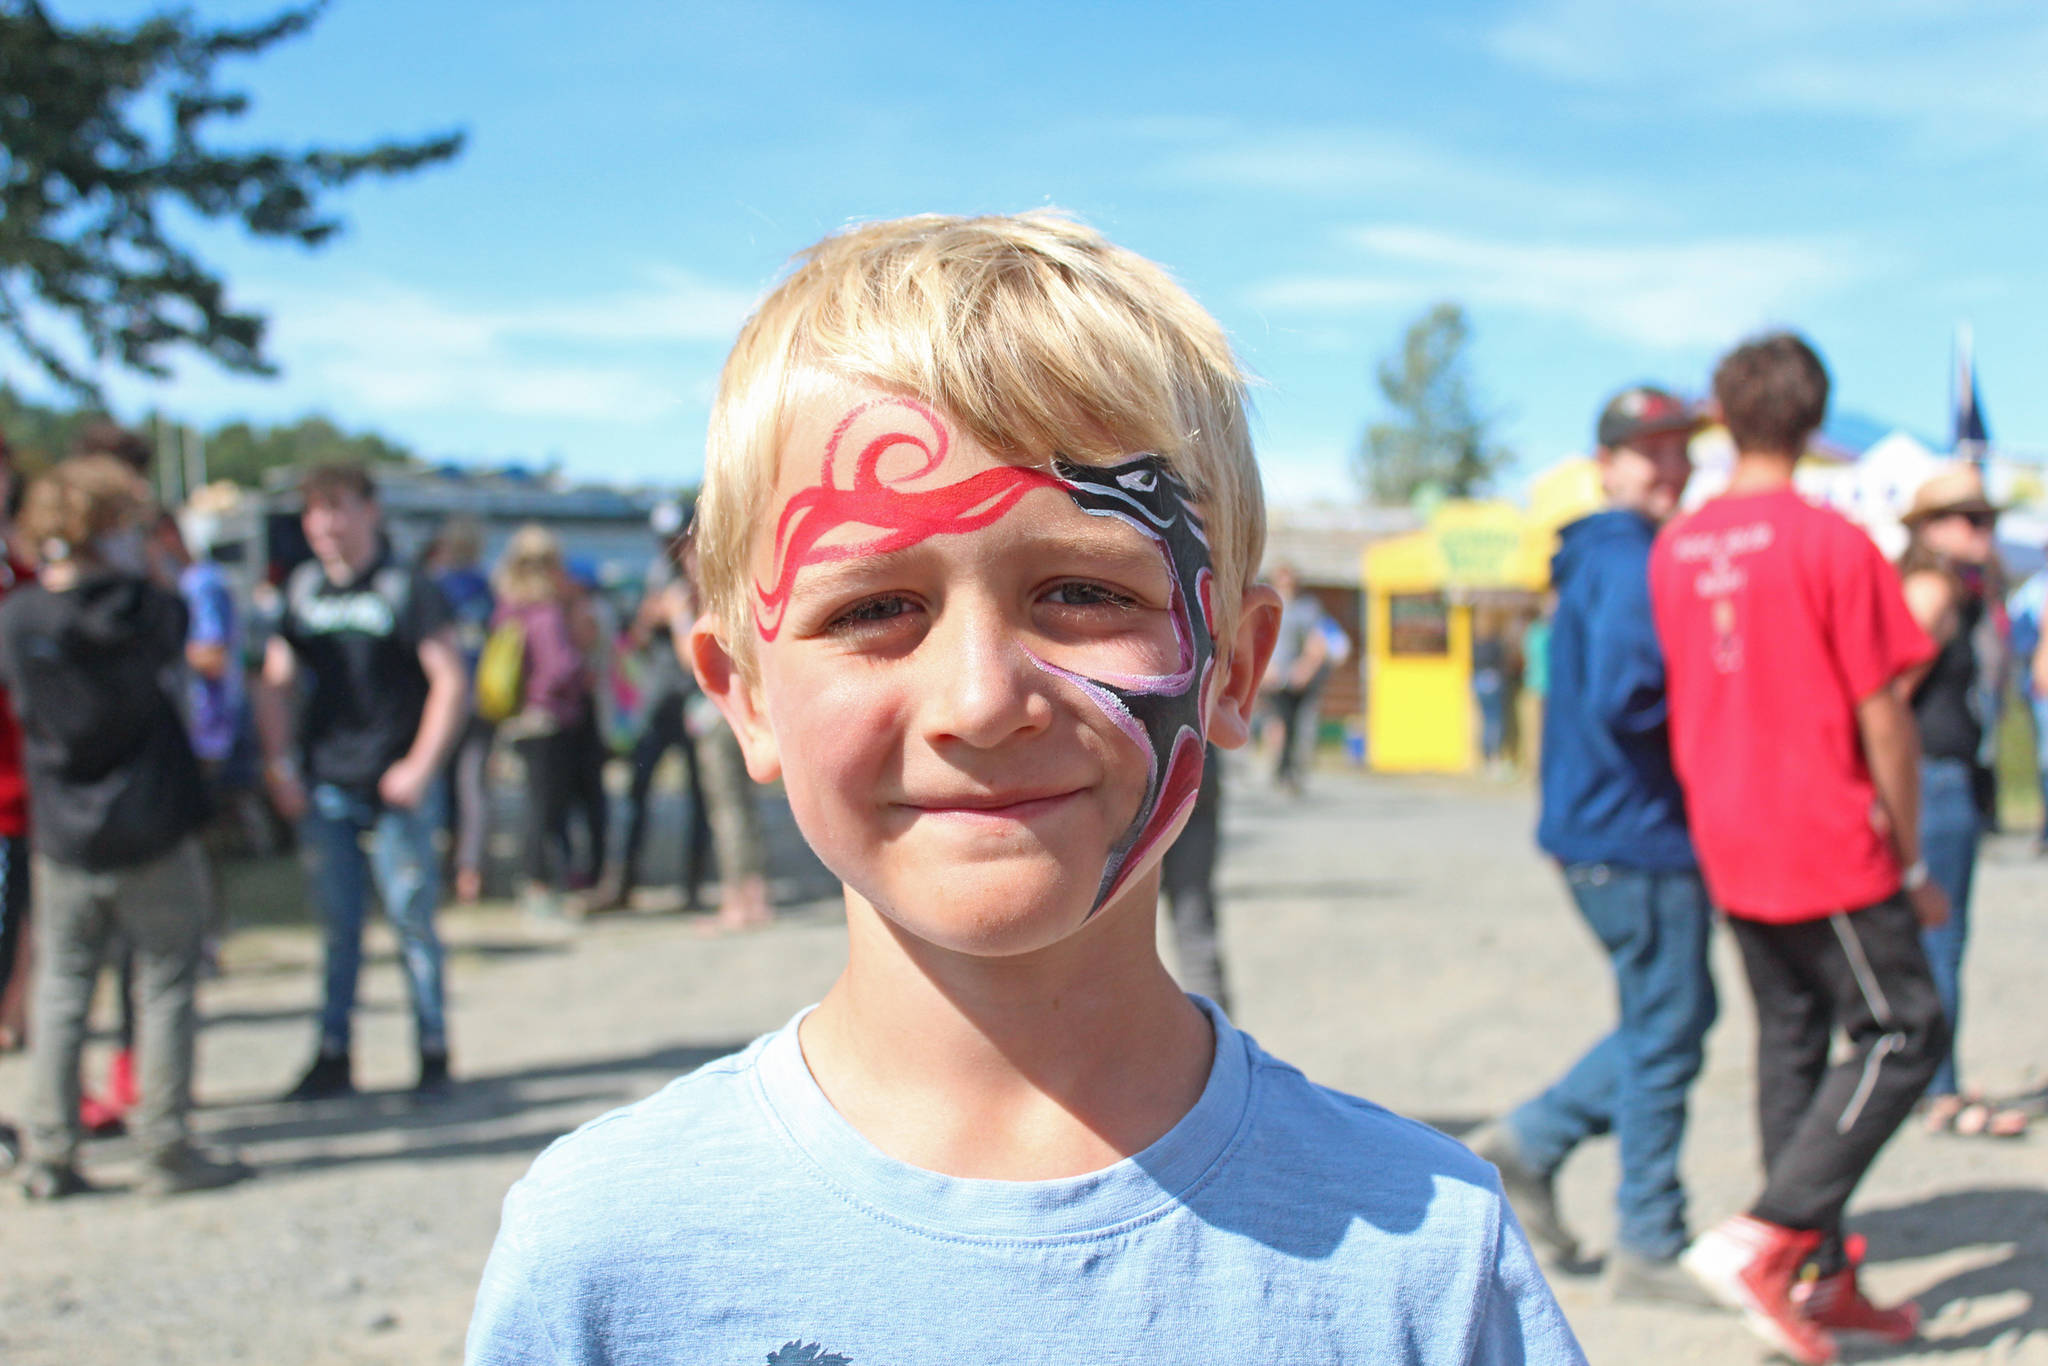 Iver Ledahl, 8, of Kenai, shows off the finished product of his face paint on Friday, Aug. 2, 2019 at Salmonfest in Ninilchik, Alaska. (Photo by Megan Pacer/Homer News)